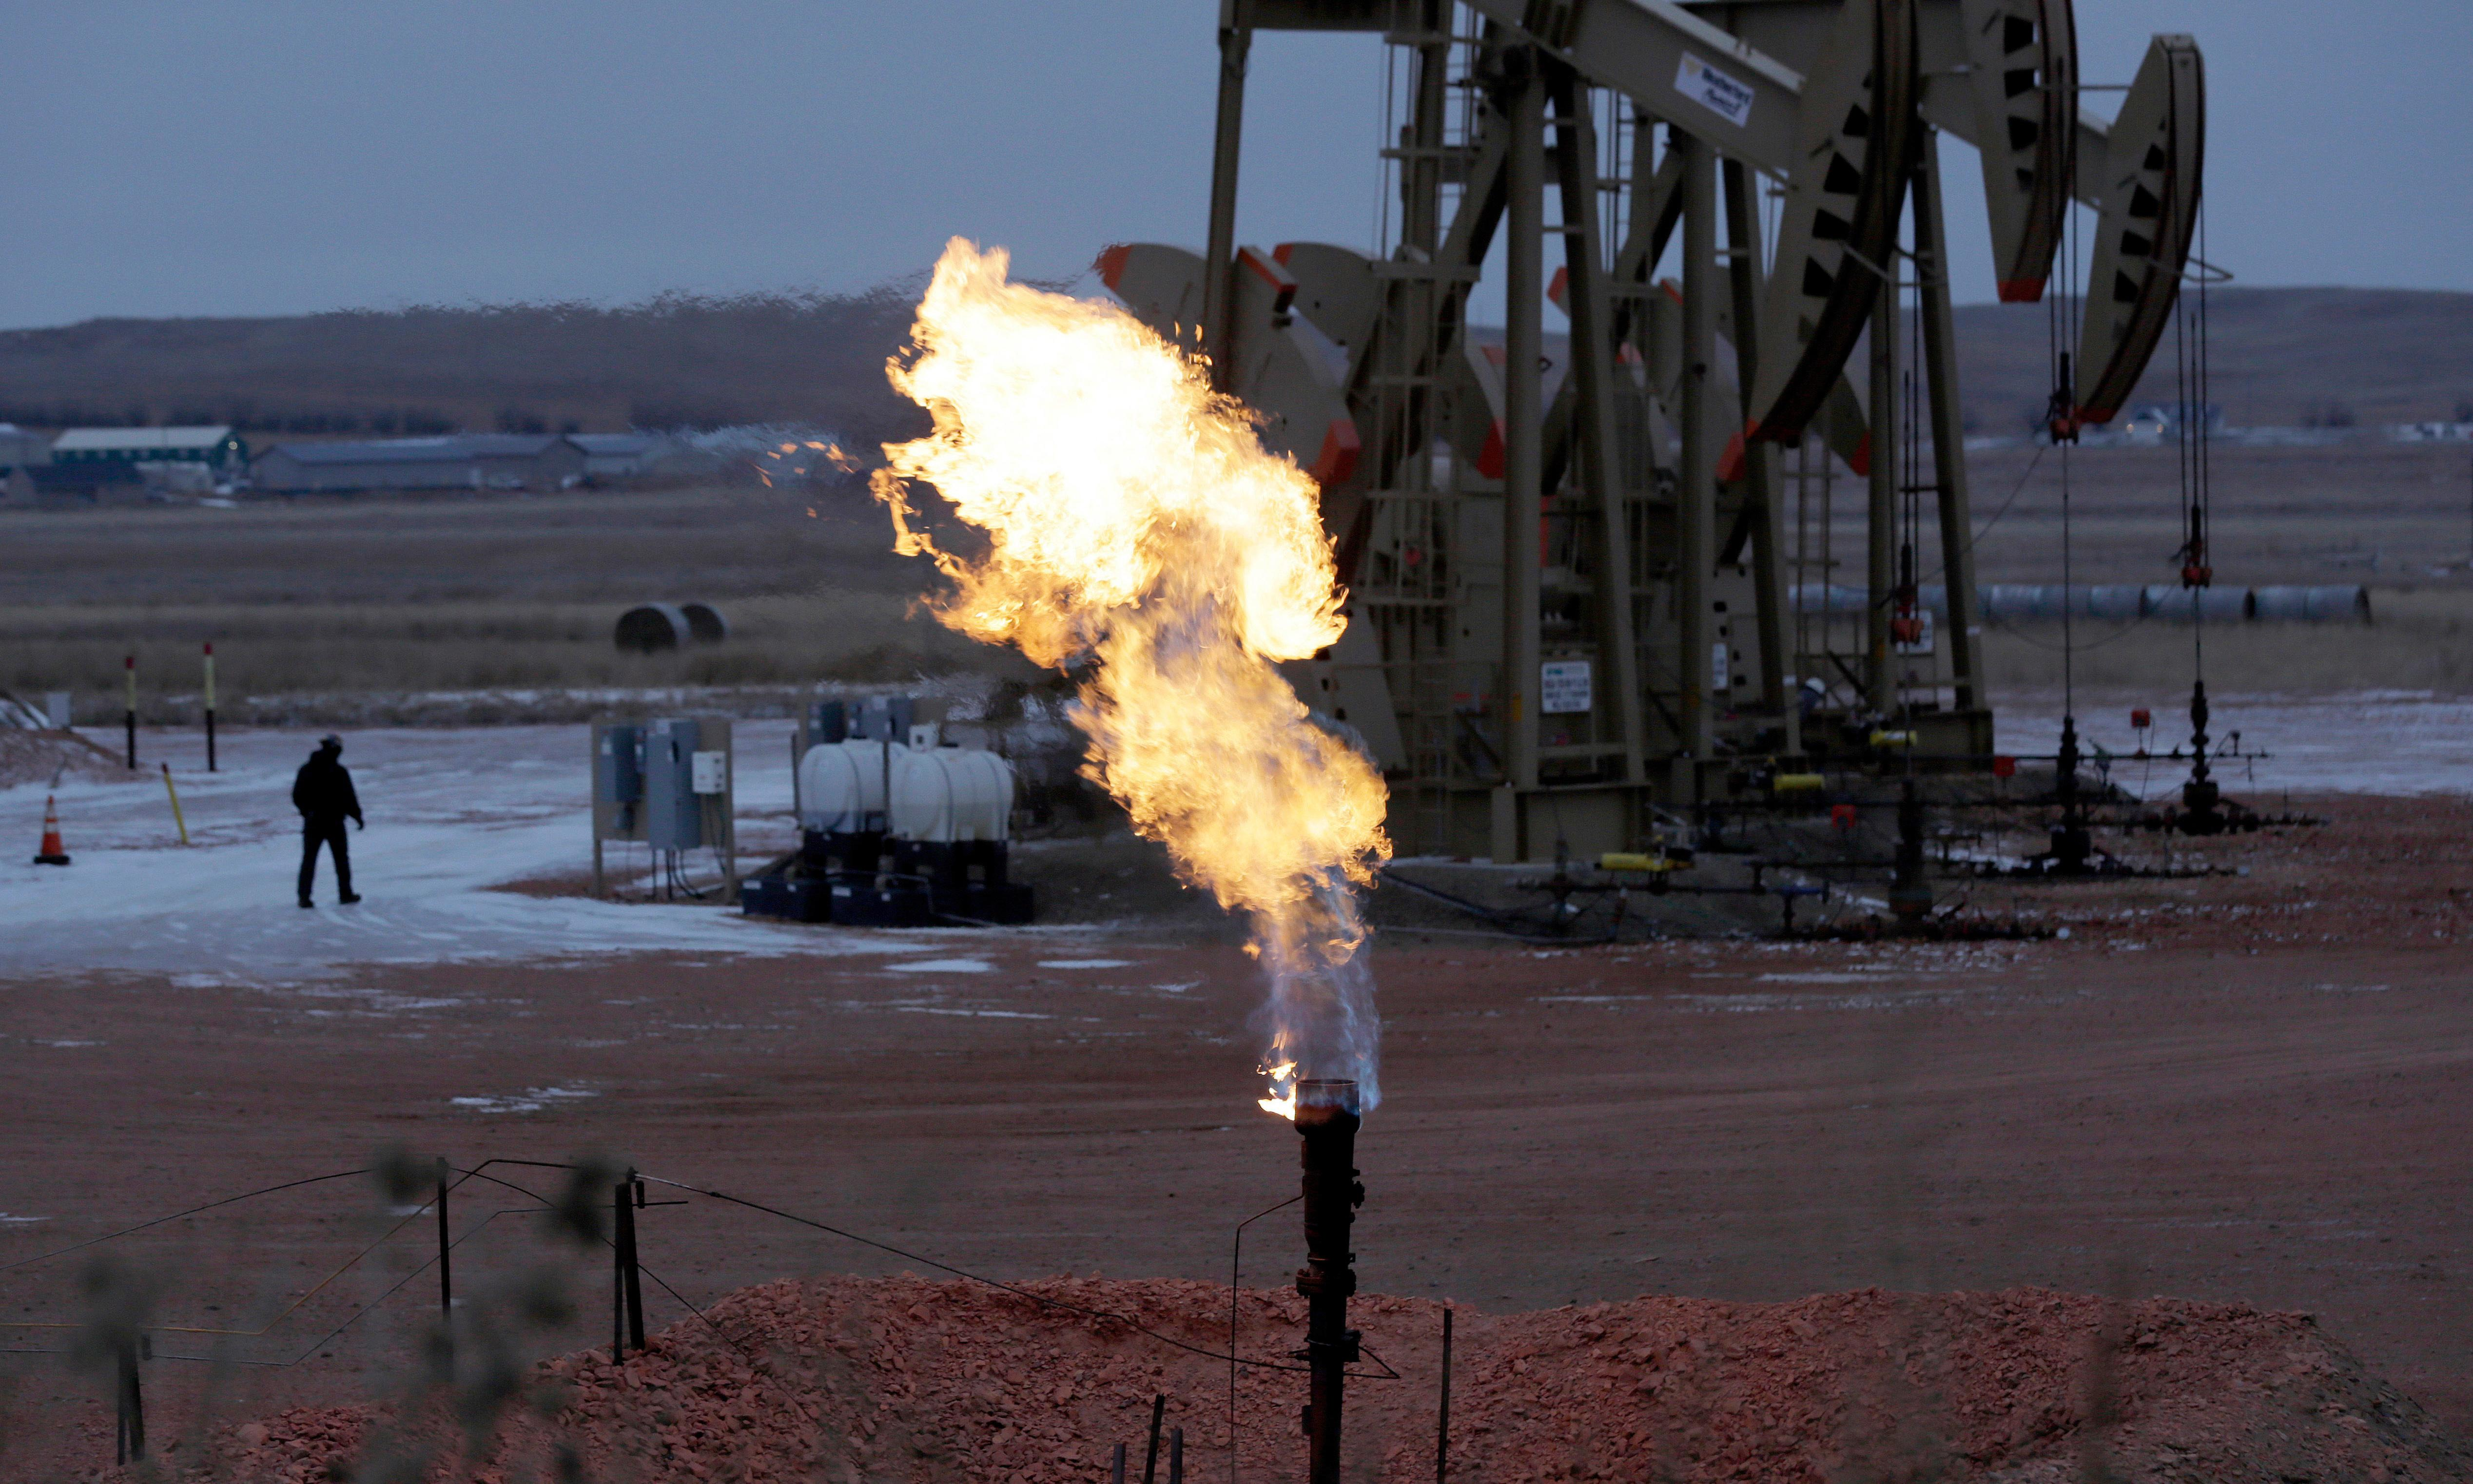 US energy department rebrands fossil fuels as 'molecules of freedom'